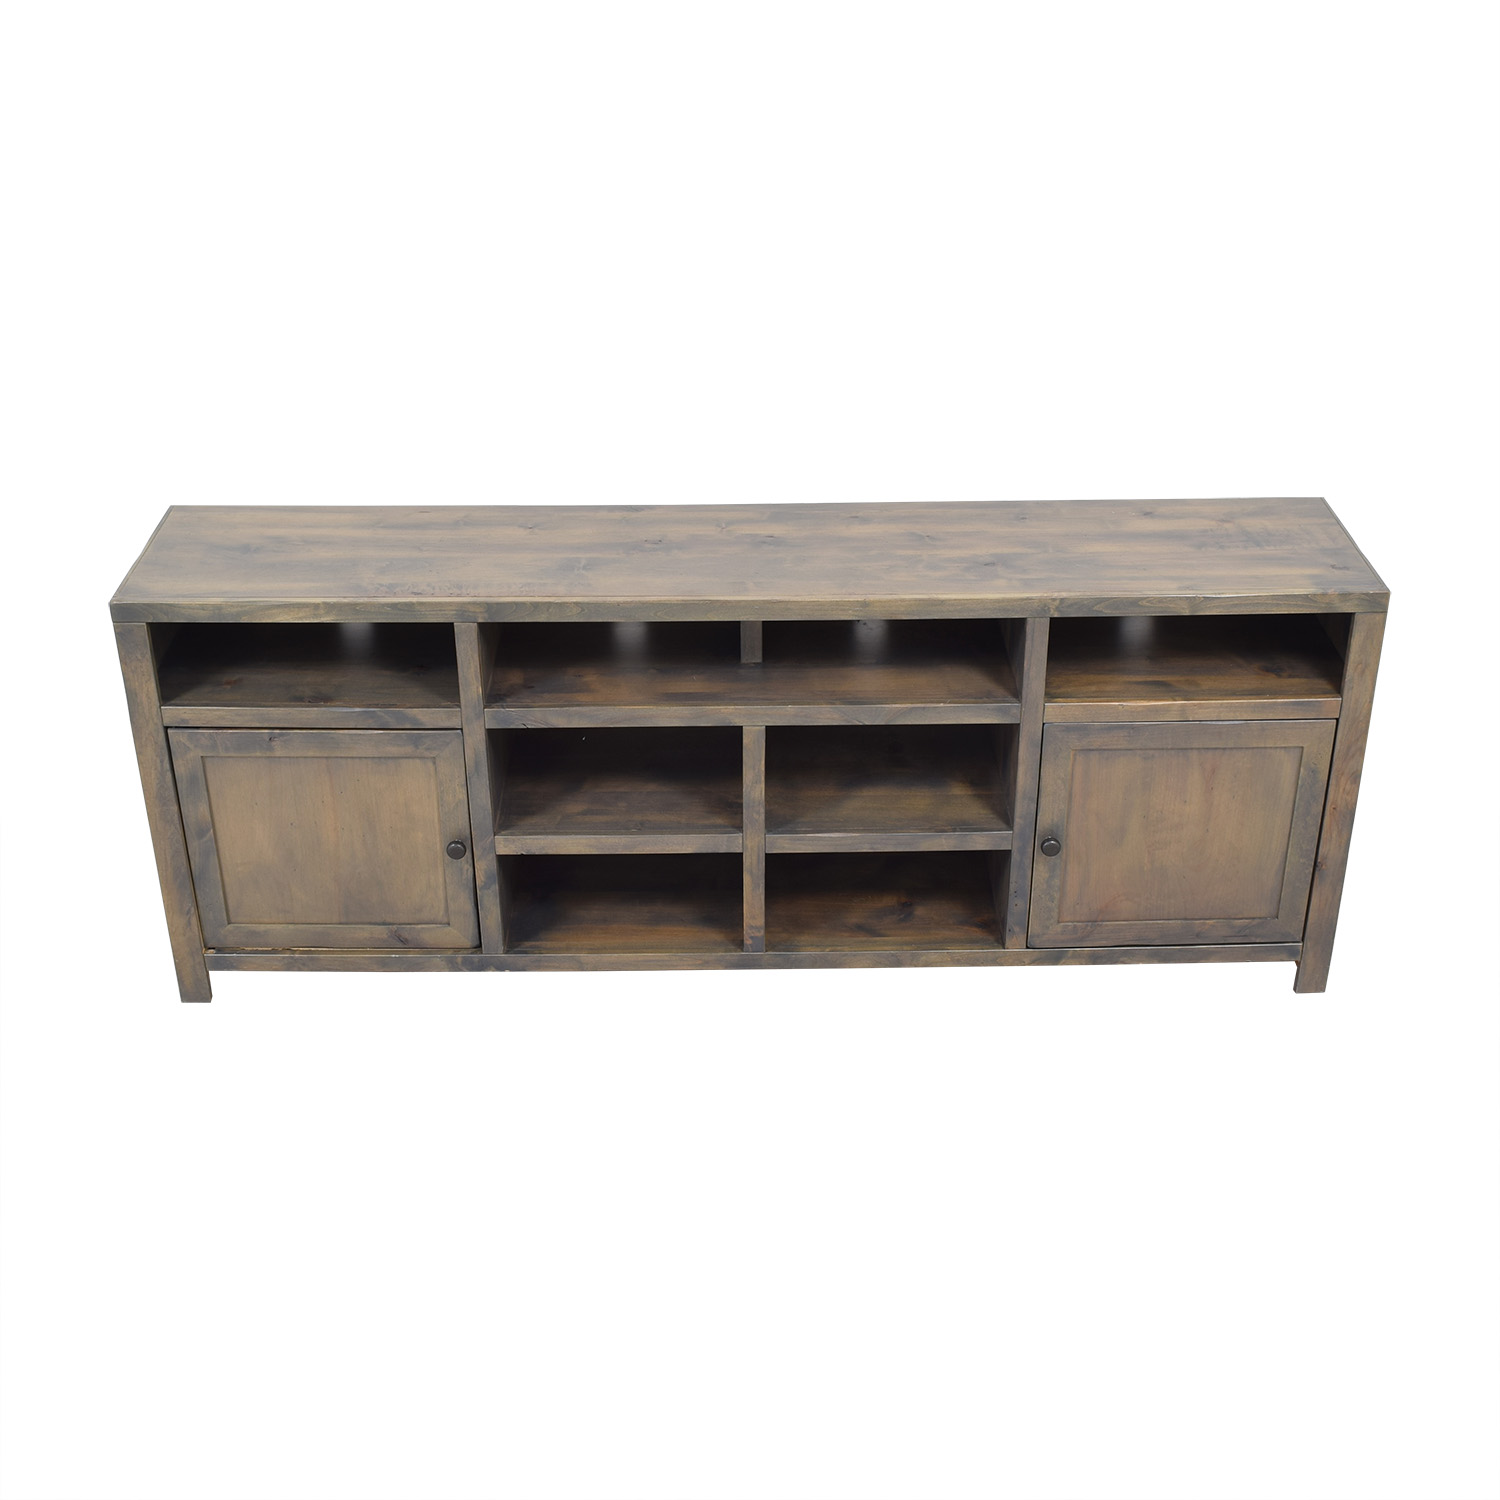 Legends Furniture Legends Furniture Joshua Creek Super Console nj